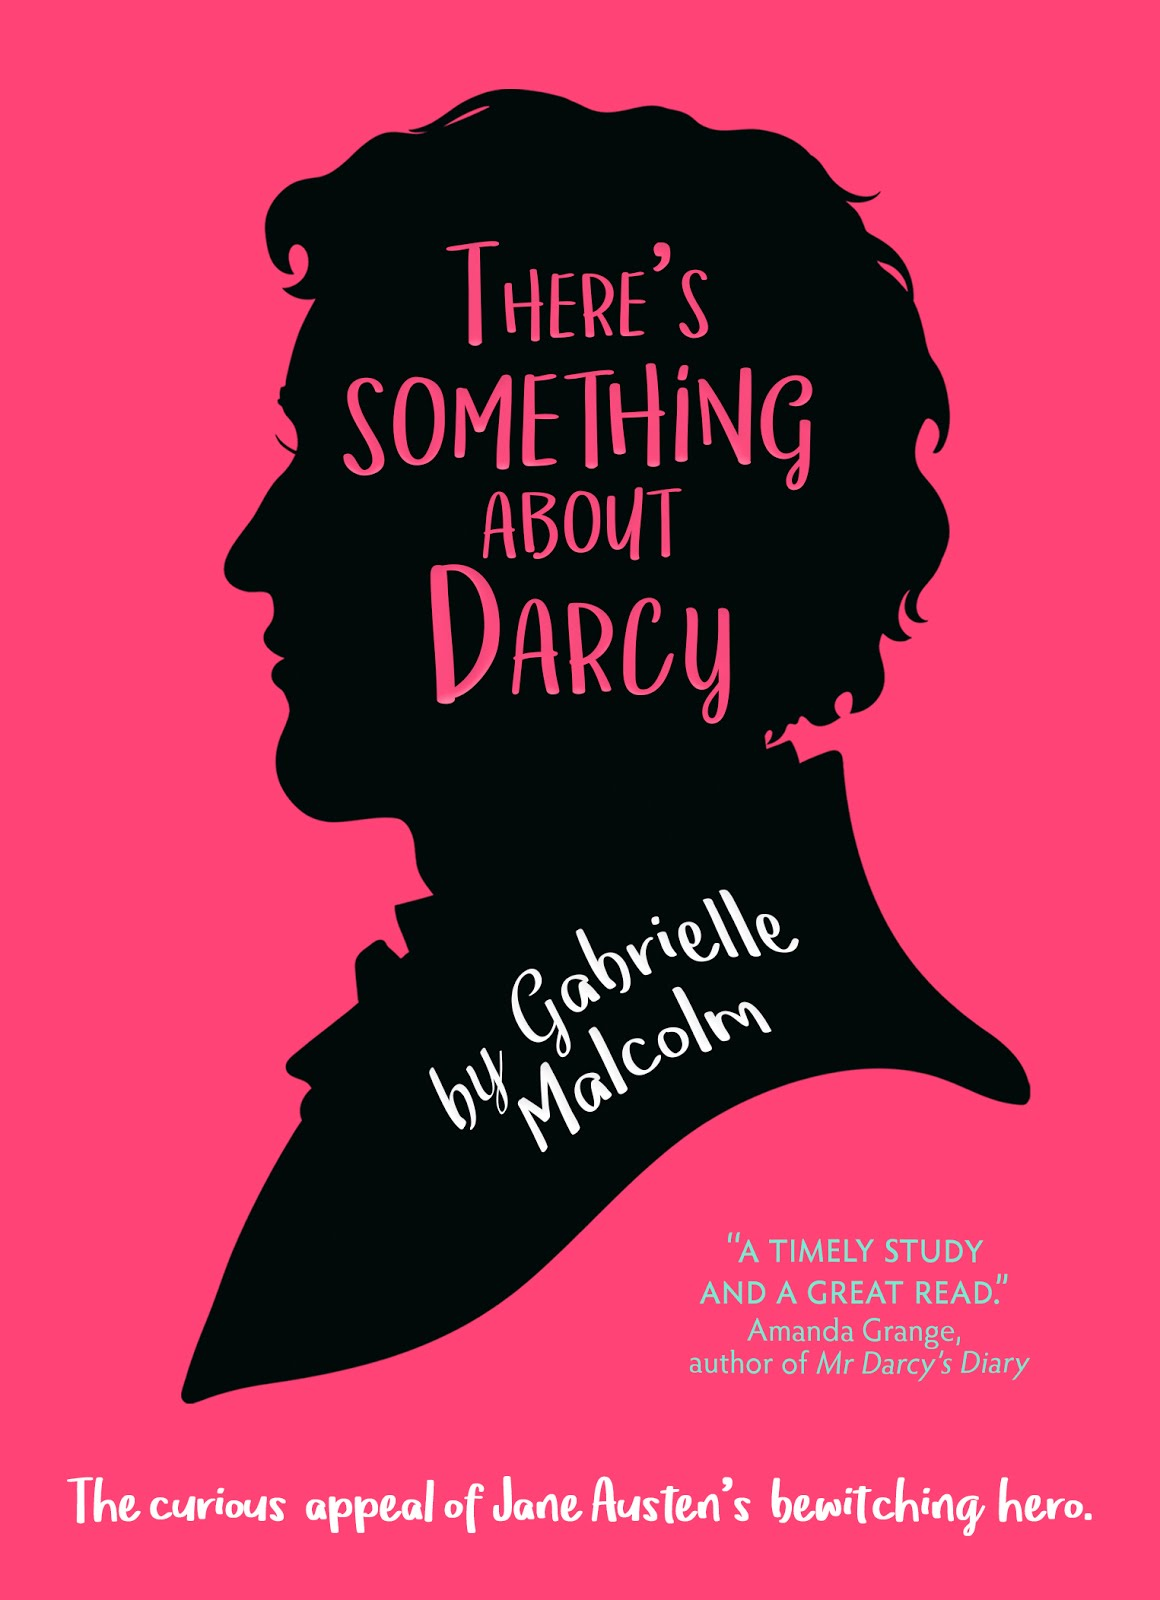 There's Something About Darcy by Gabrielle Malcolm